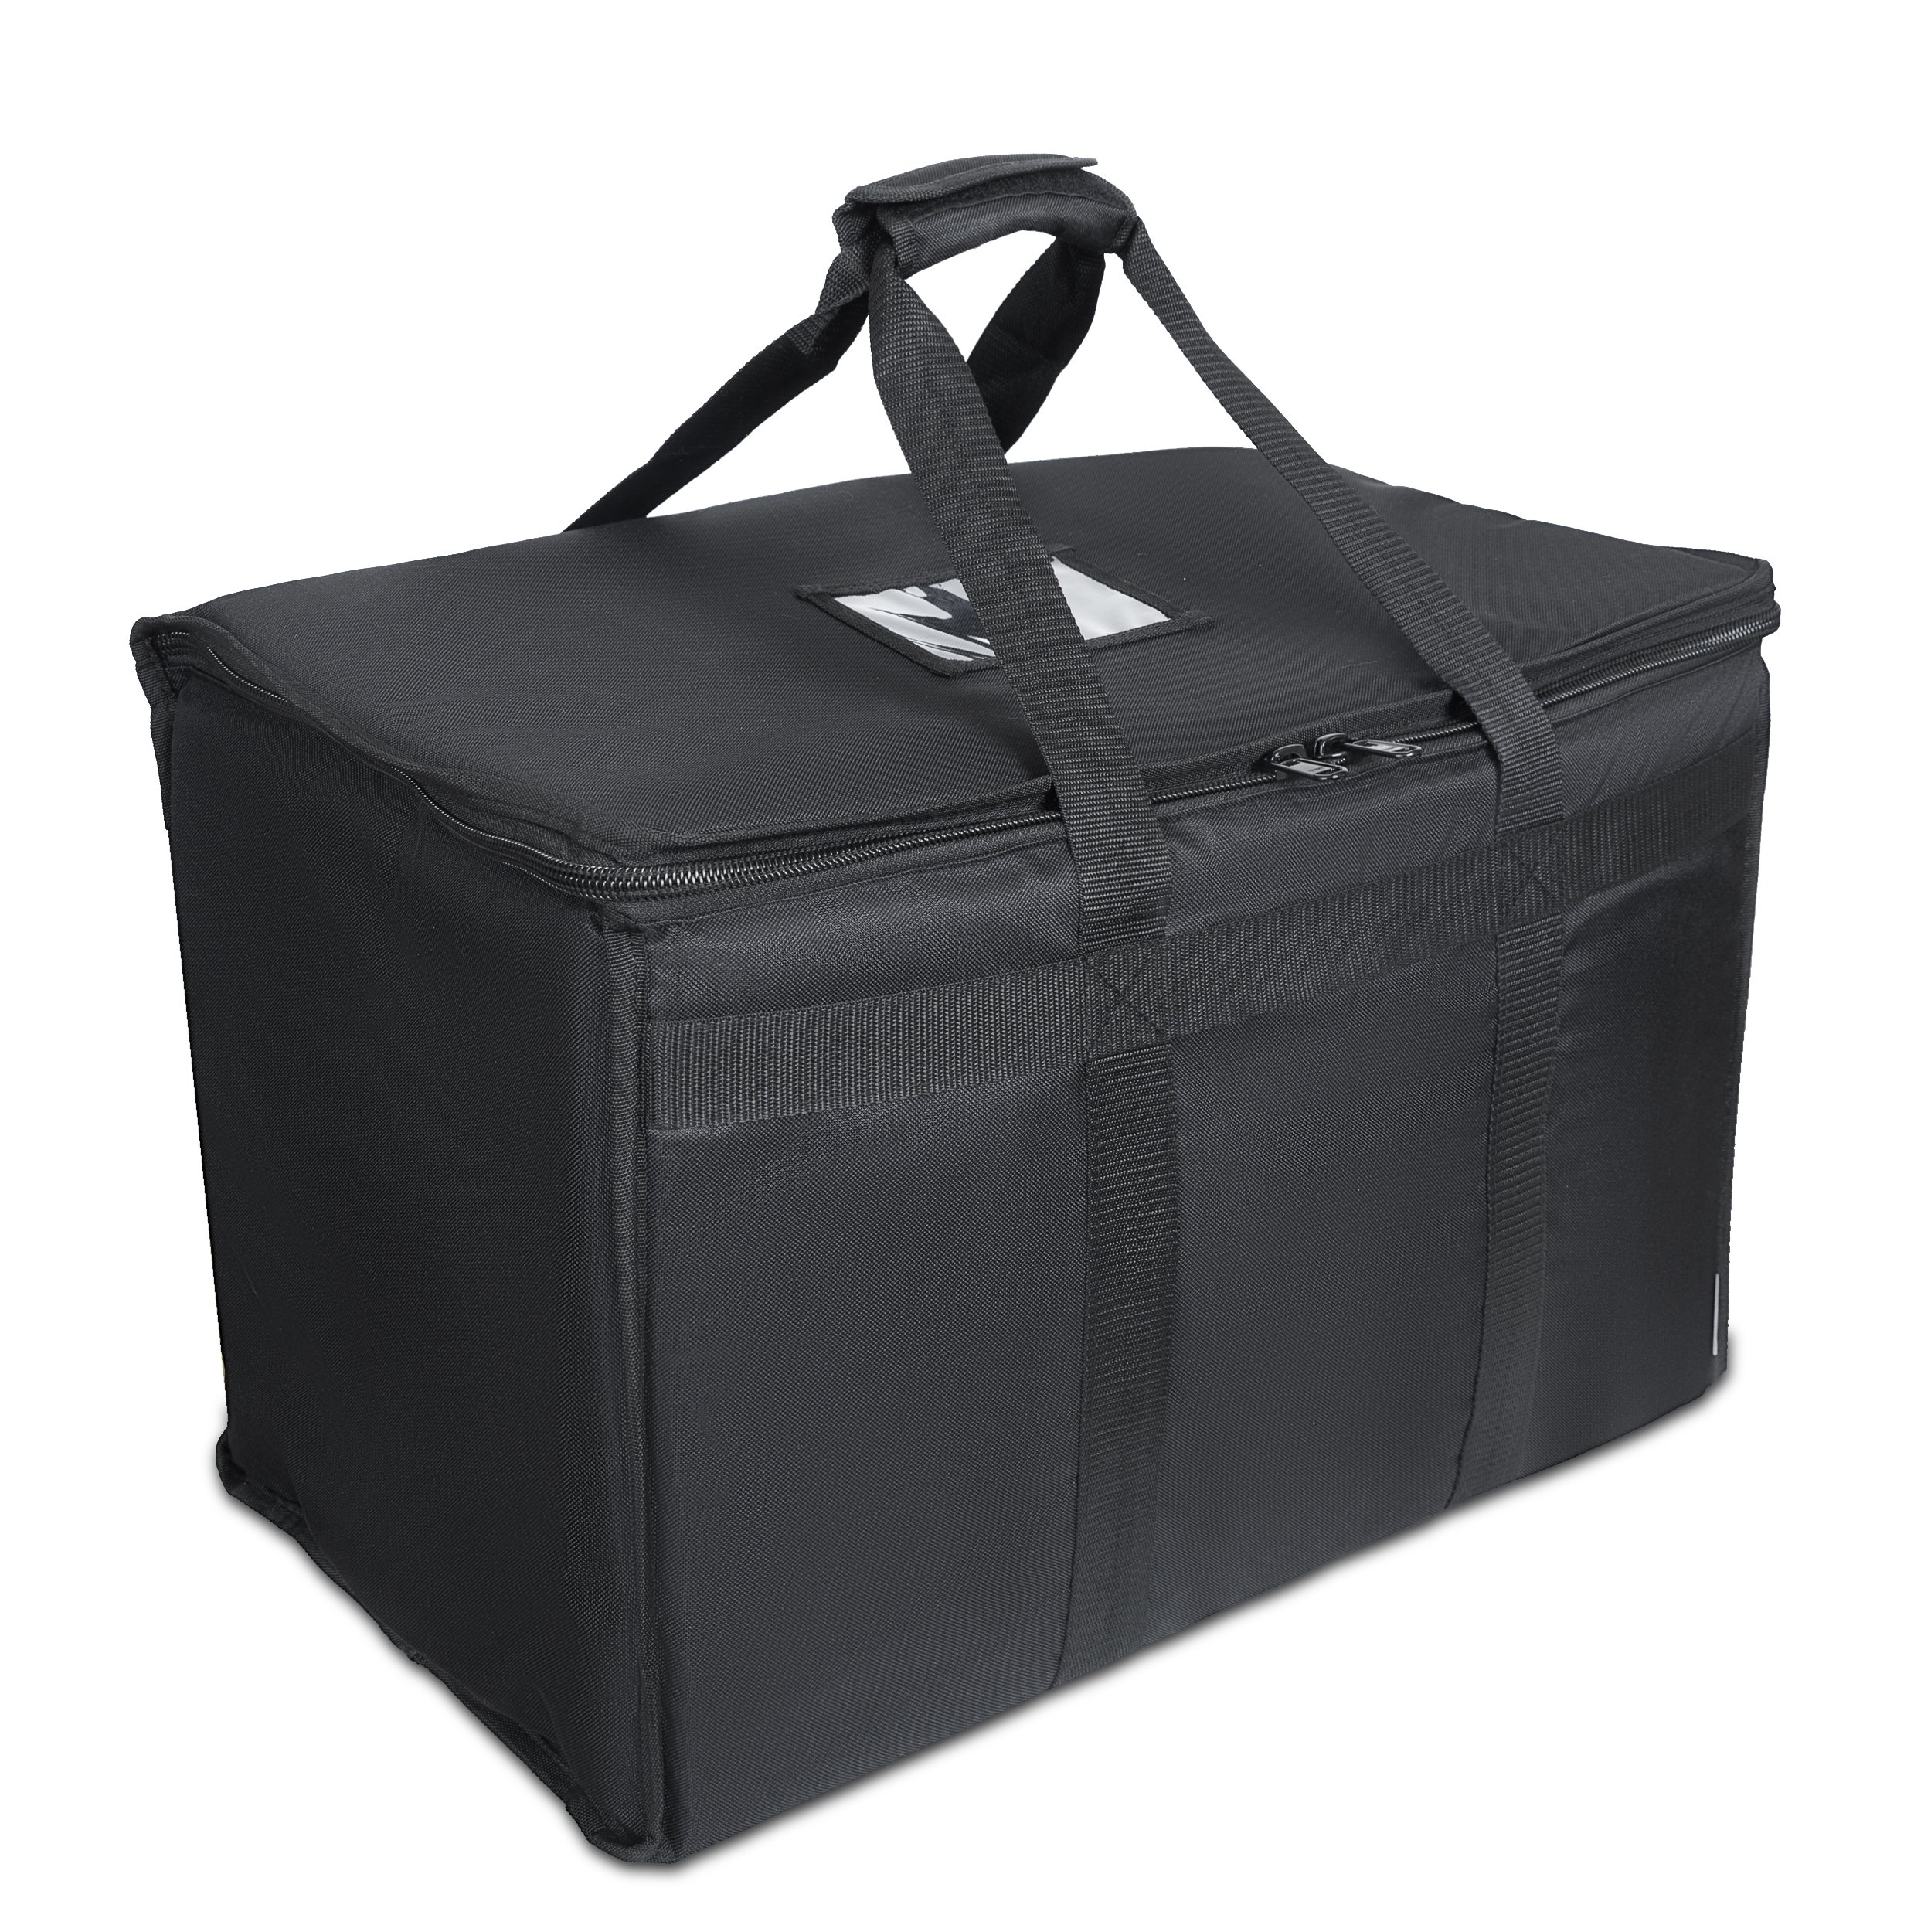 """Food Delivery Bag. Heavy Duty Bag with Strong Insulation. Reinforced Stitching for Heavy Loads. Perfect for Food Delivery & Commercial Transportation. Fit Chafing Trays. Large Capacity (23""""x14""""x15""""). by Trust the Fresh (Image #7)"""